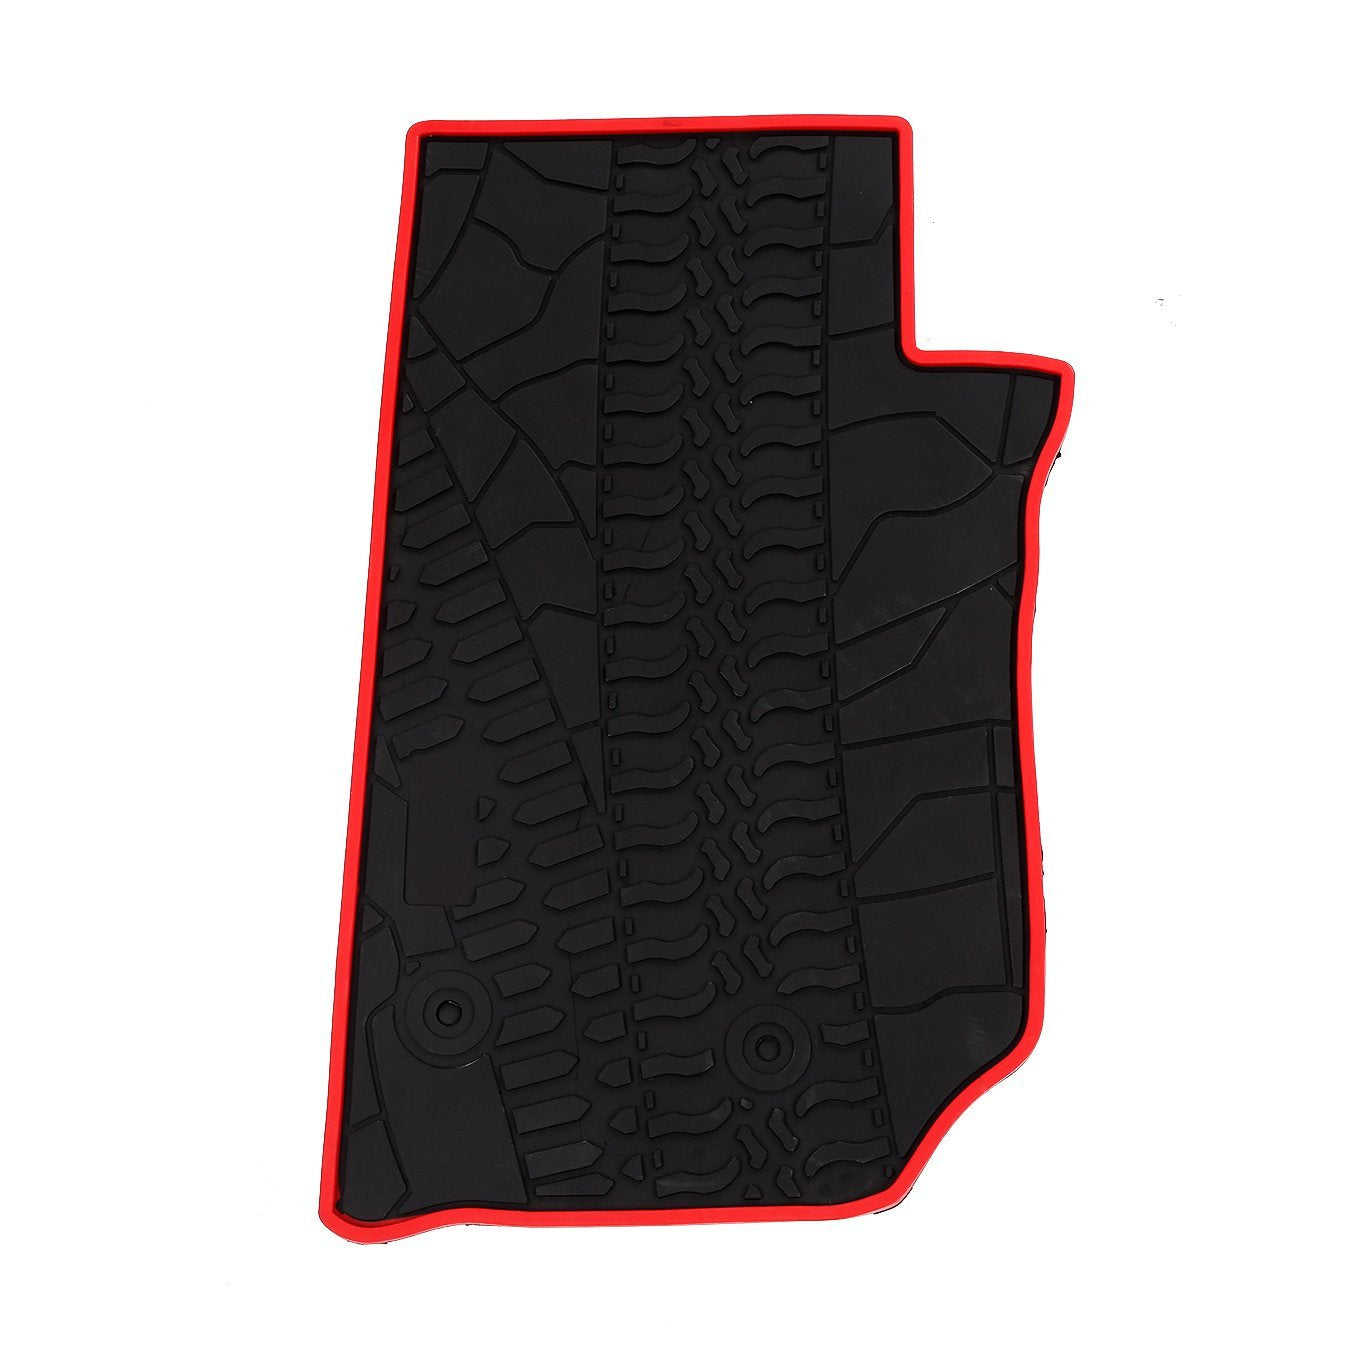 wildrock4x4 Floor Mats Jeep Wrangler JK 14-17 Runner Floor Mats Set Heavy Duty